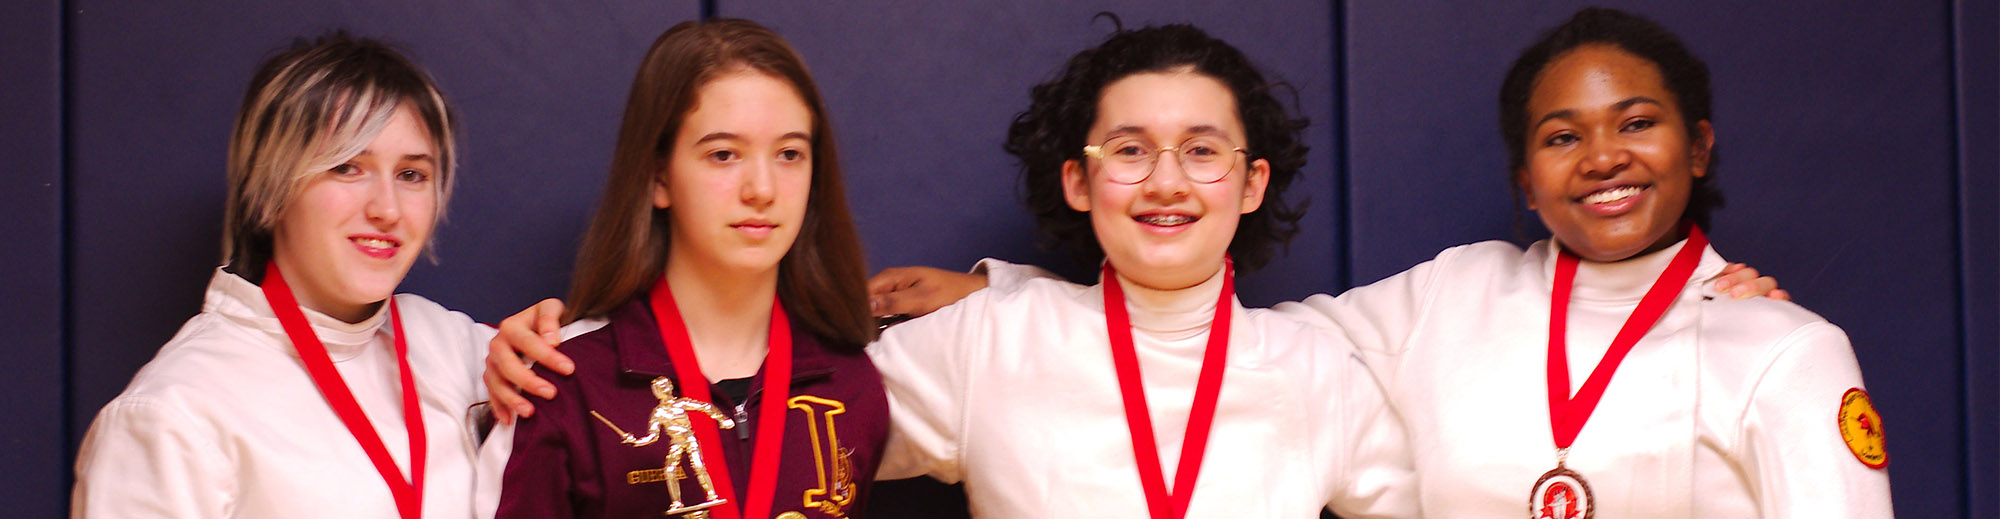 Lassiter High School Women's Fencing Team